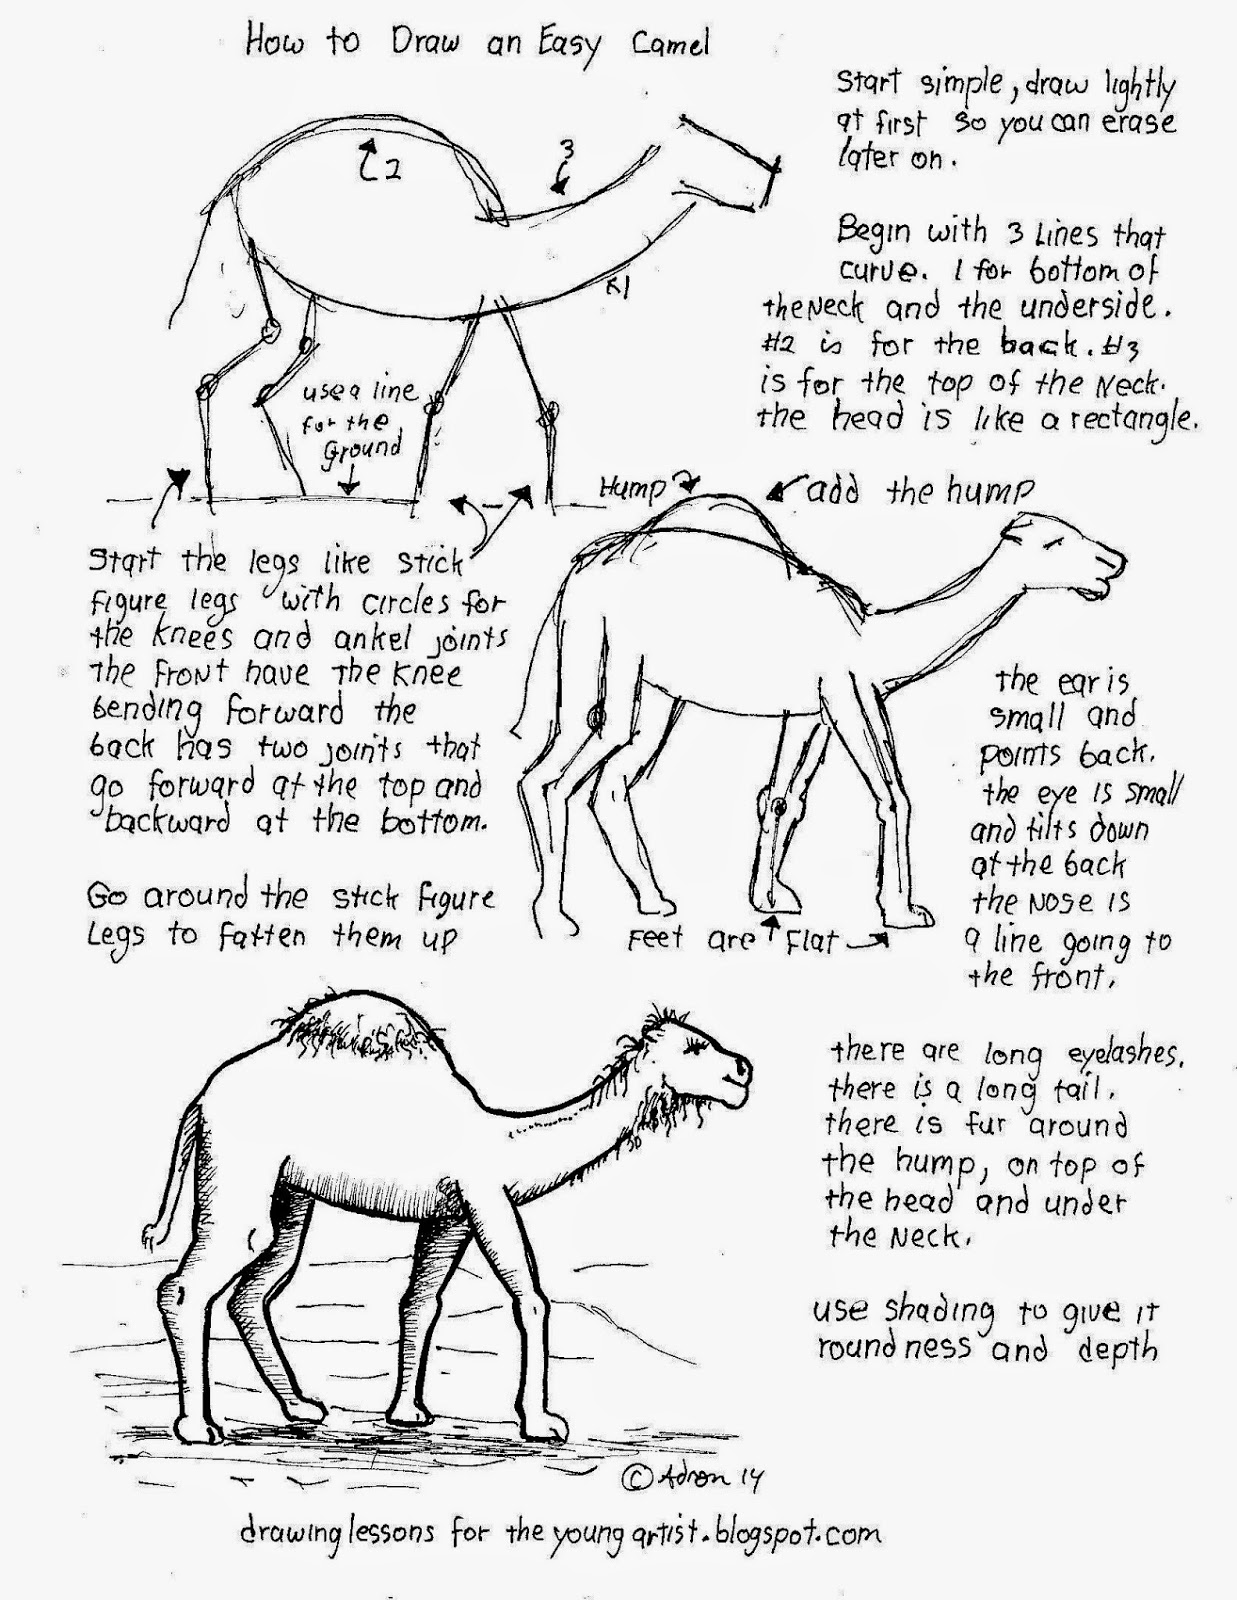 A printable how to worksheet for drawing a camel